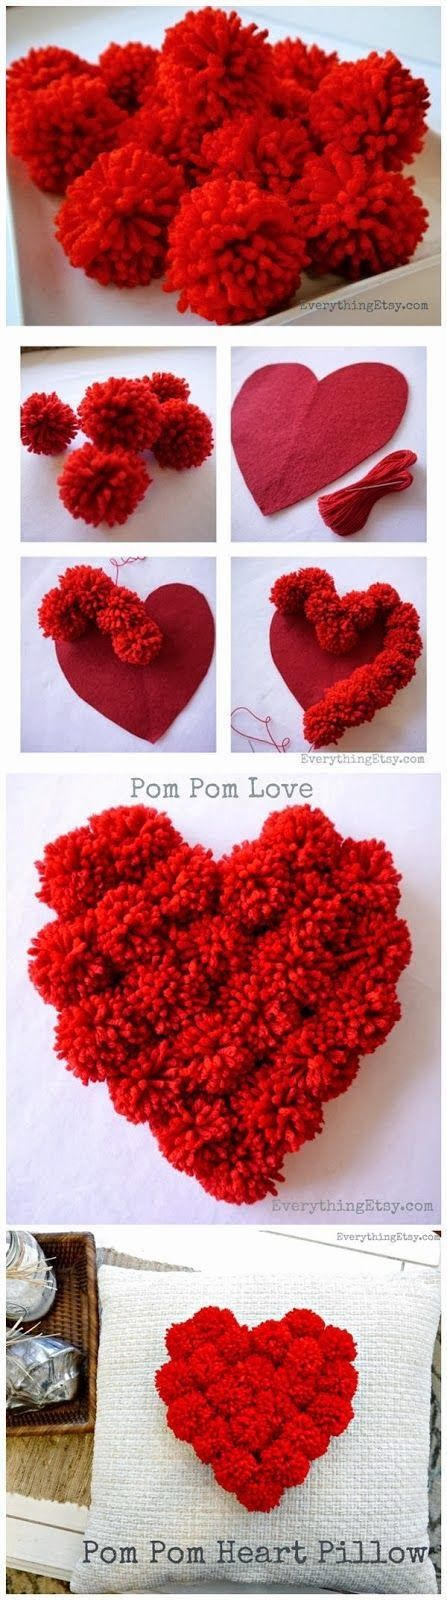 Homemade Pom pom Heart Pillow...Top 7 Valentine's Day Craft Ideas Will Inspire You...#valentinesdaycraftideas: